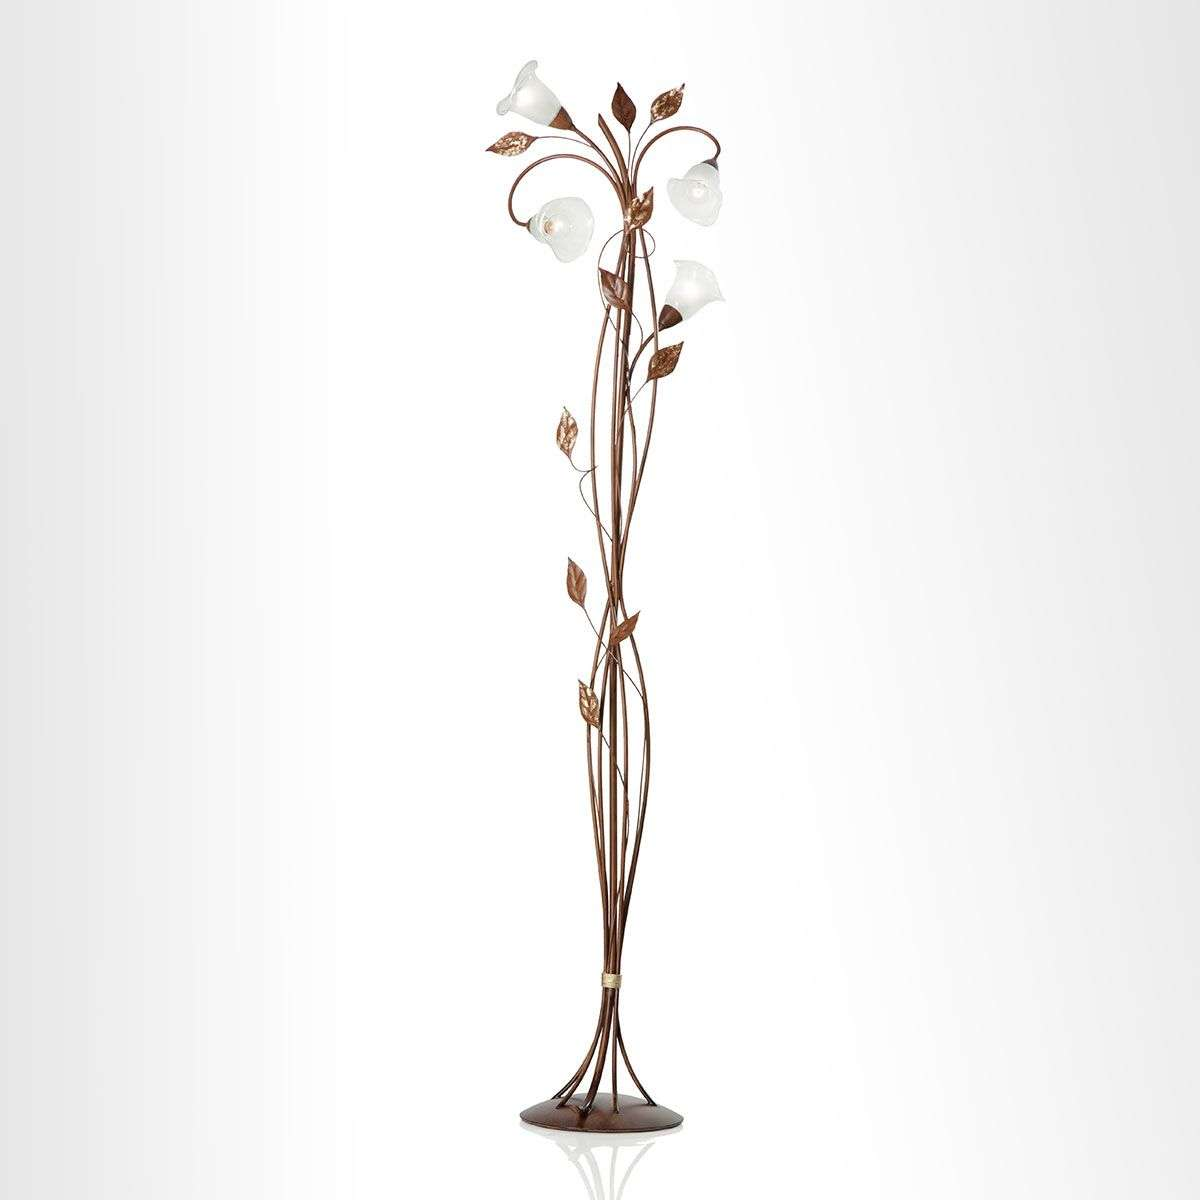 Florentia floor lamp with Murano glass flowers | Lights.co.uk